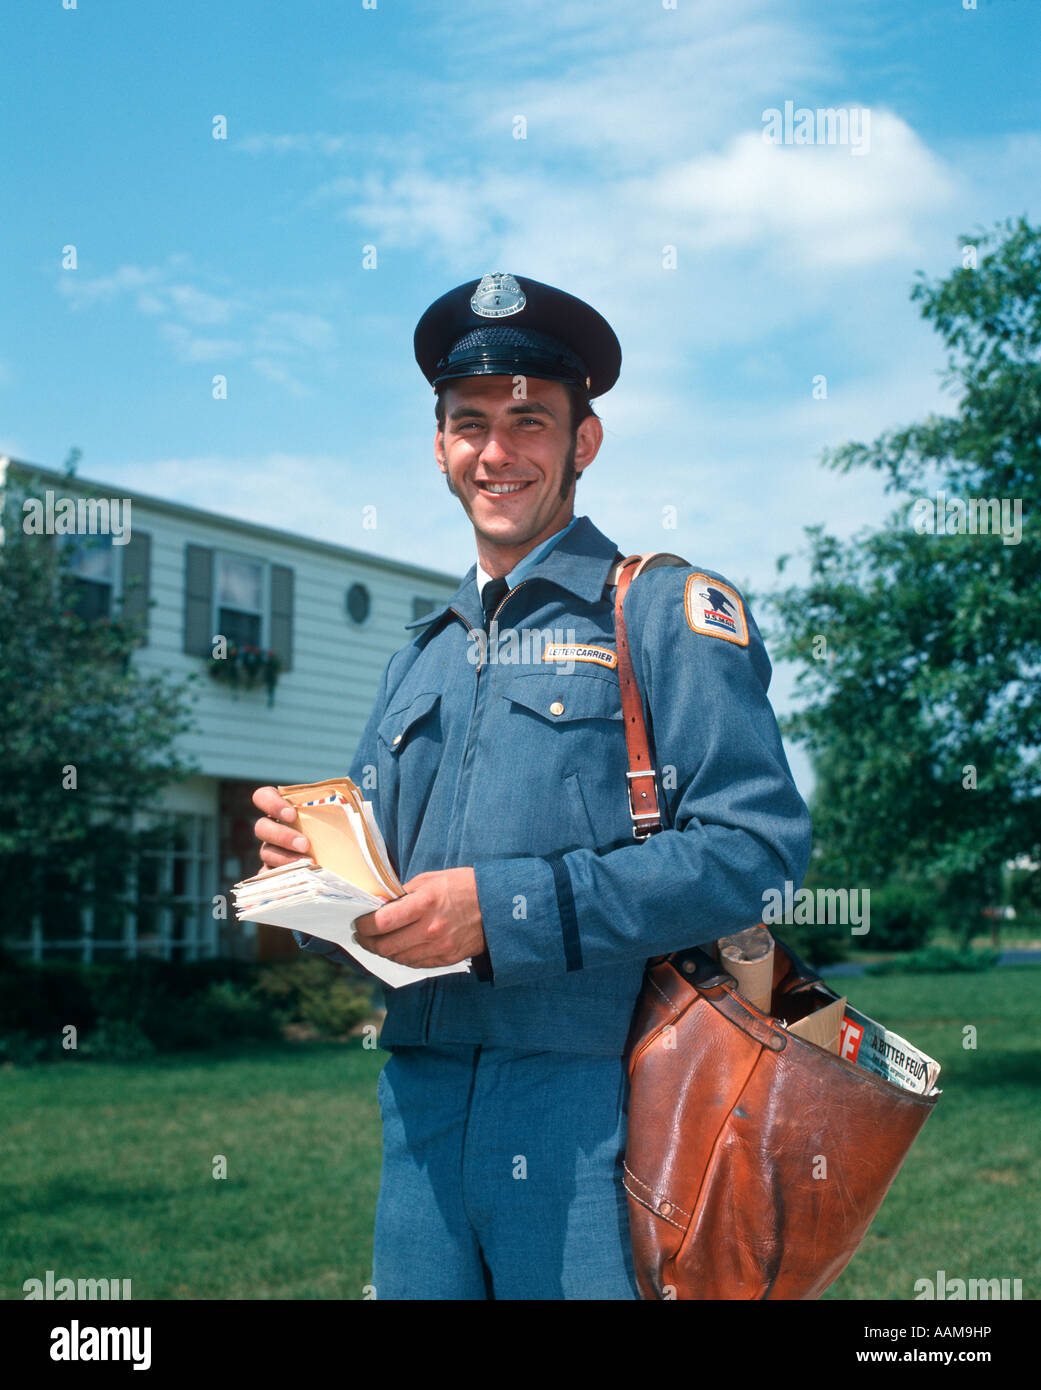 1970s 1980s SMILING MAILMAN MAIL MAN OUTDOORS HOLDING